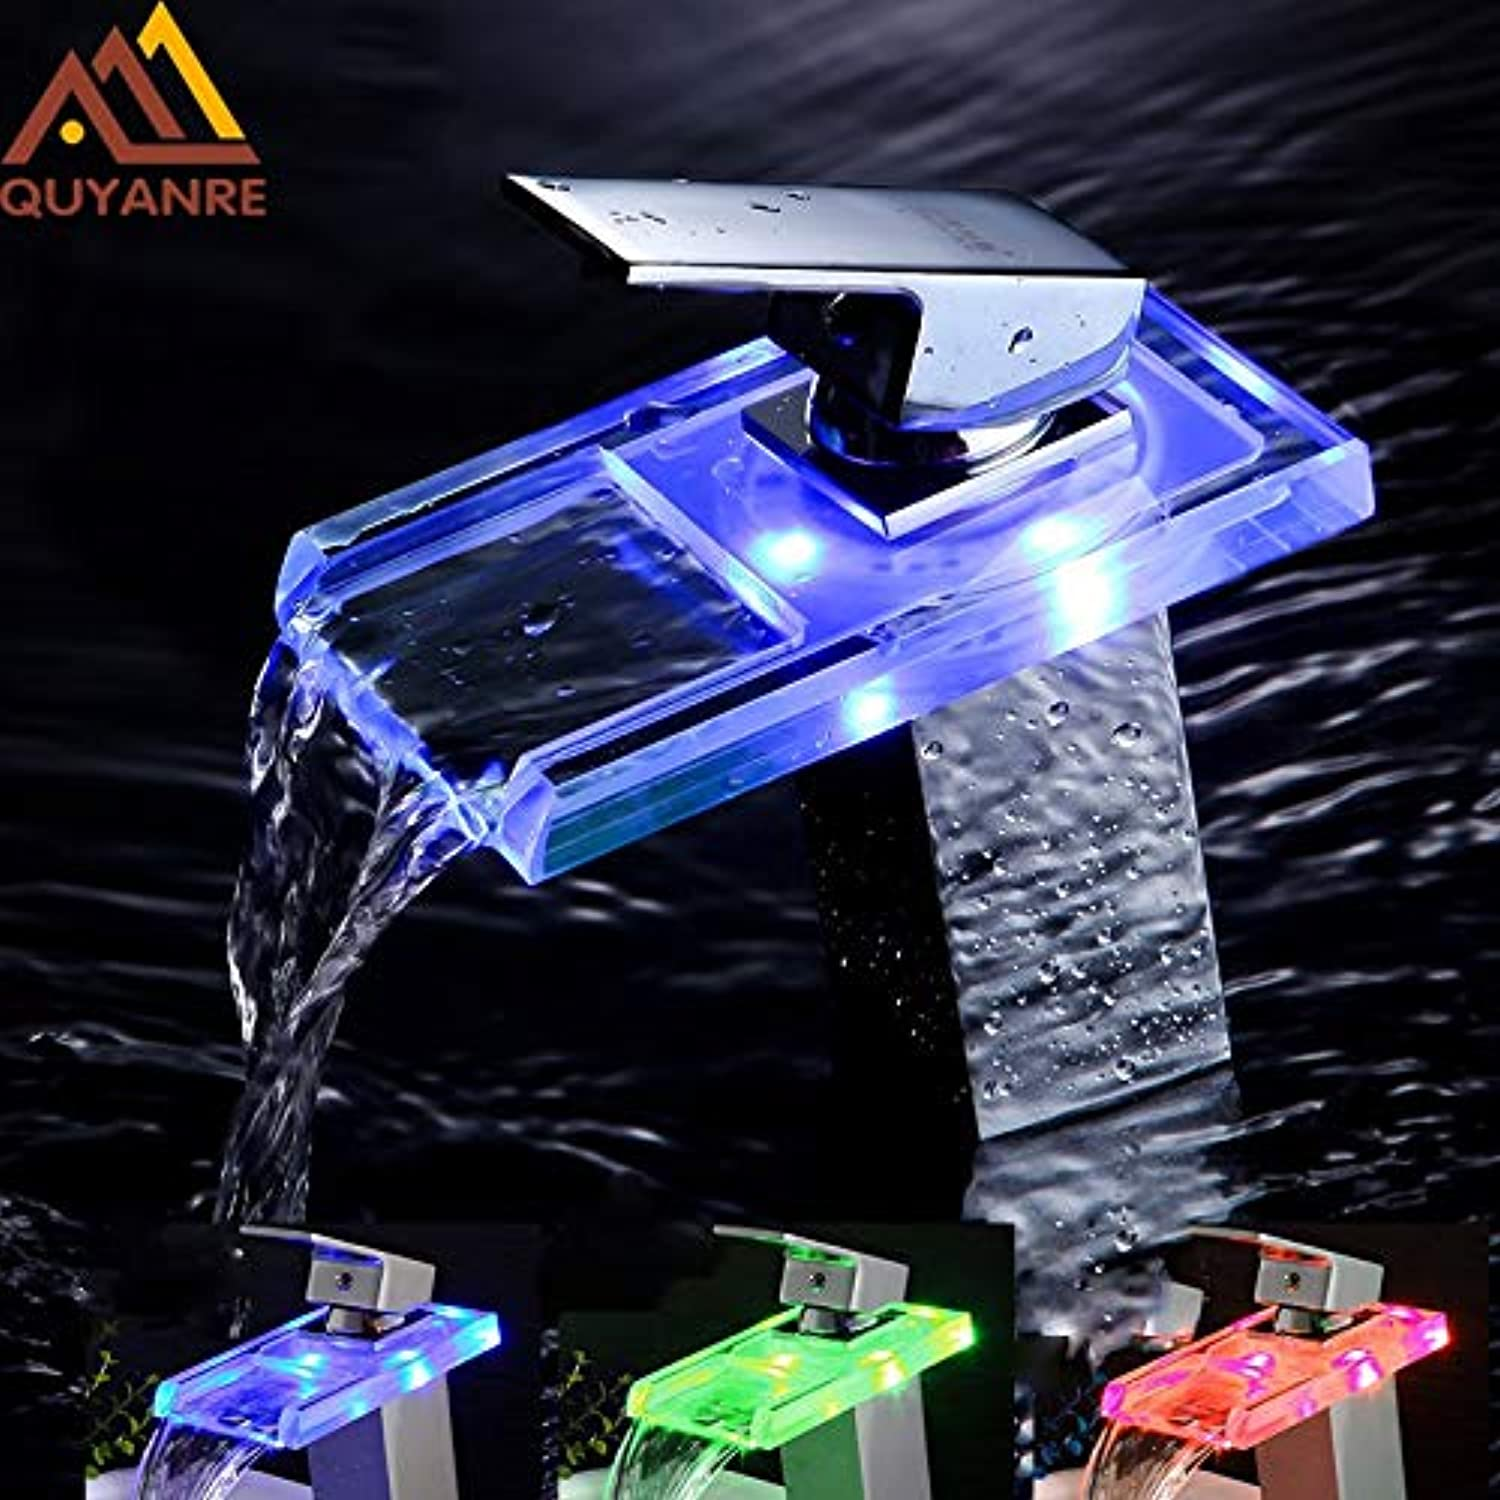 U-Enjoy Chandelier Luxury Glass Chrome Led Basin Top Quality Faucet Waterfall Crystal Type Handle color Changing Bathroom Led Battery Mixer Tap Free Shipping